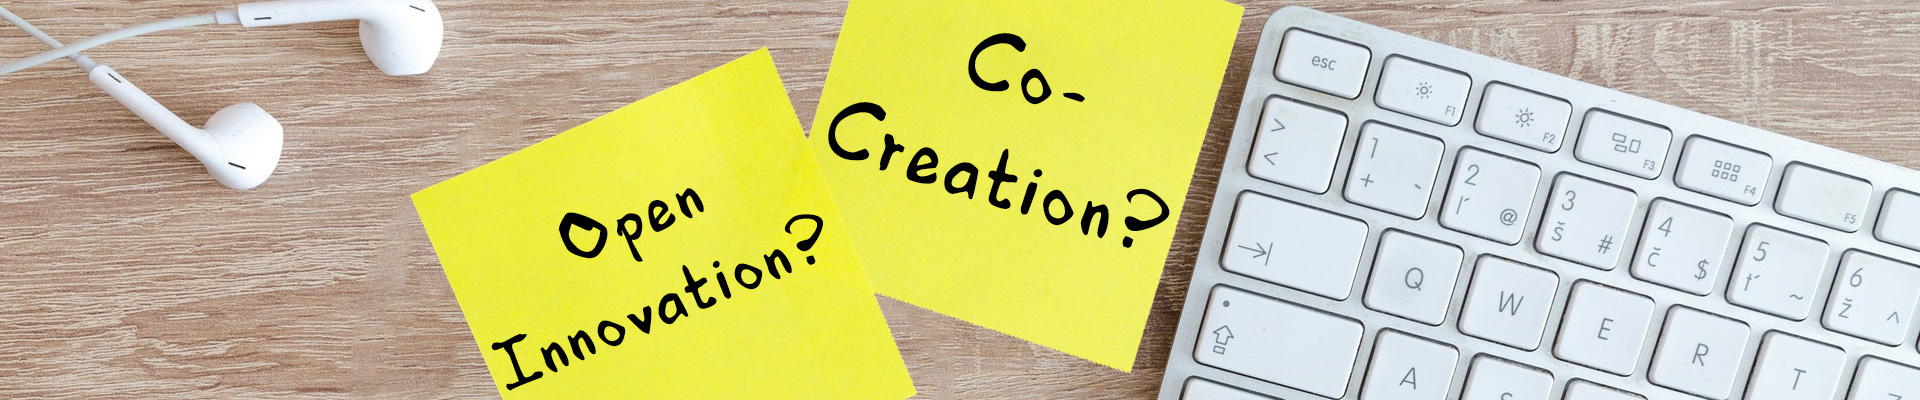 Open Innovation und Co-Creation